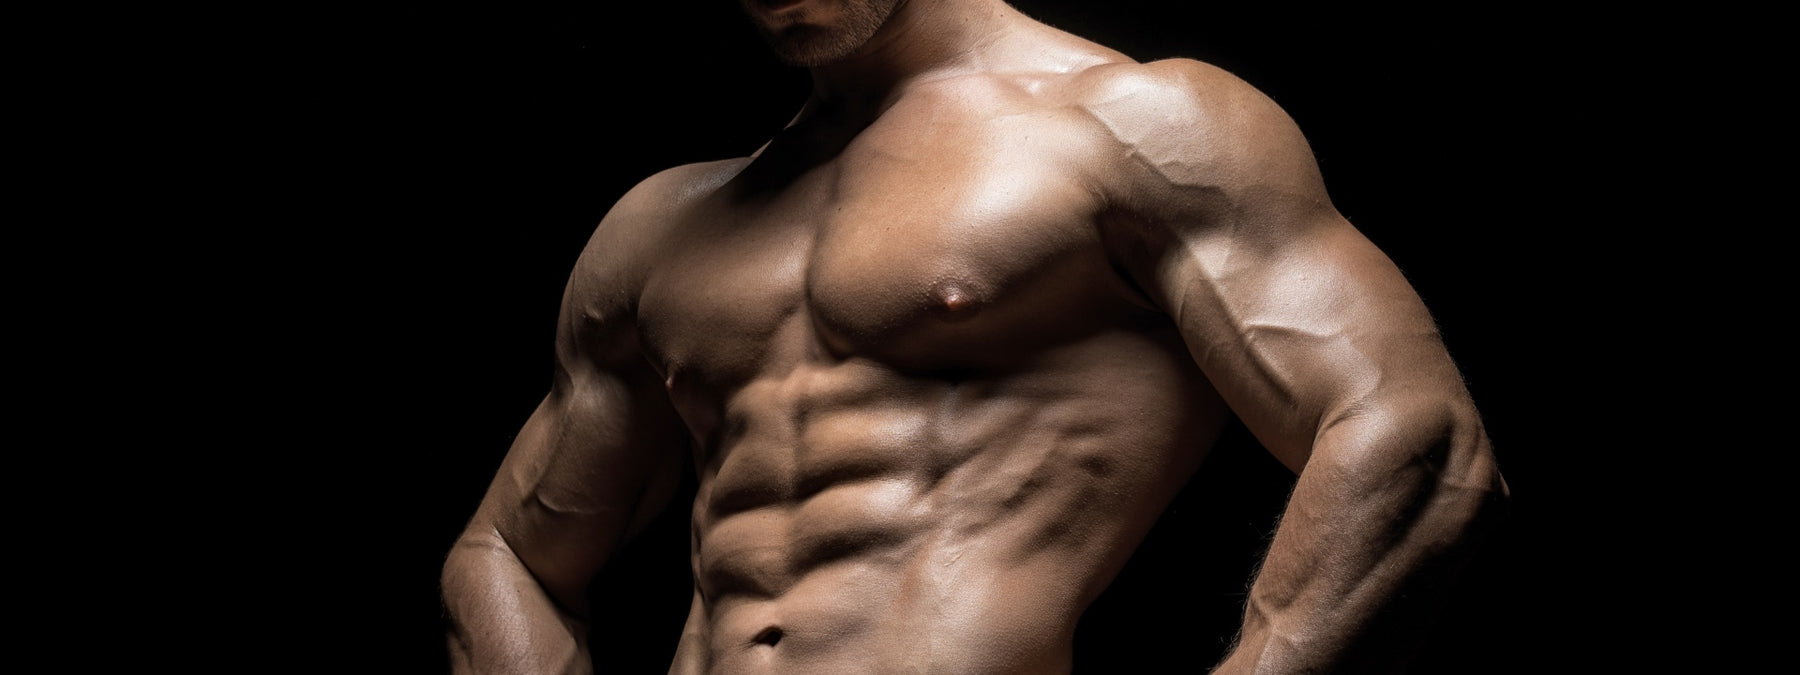 Why Are Gymnasts so Jacked? Bulk up With Your Bodyweight!